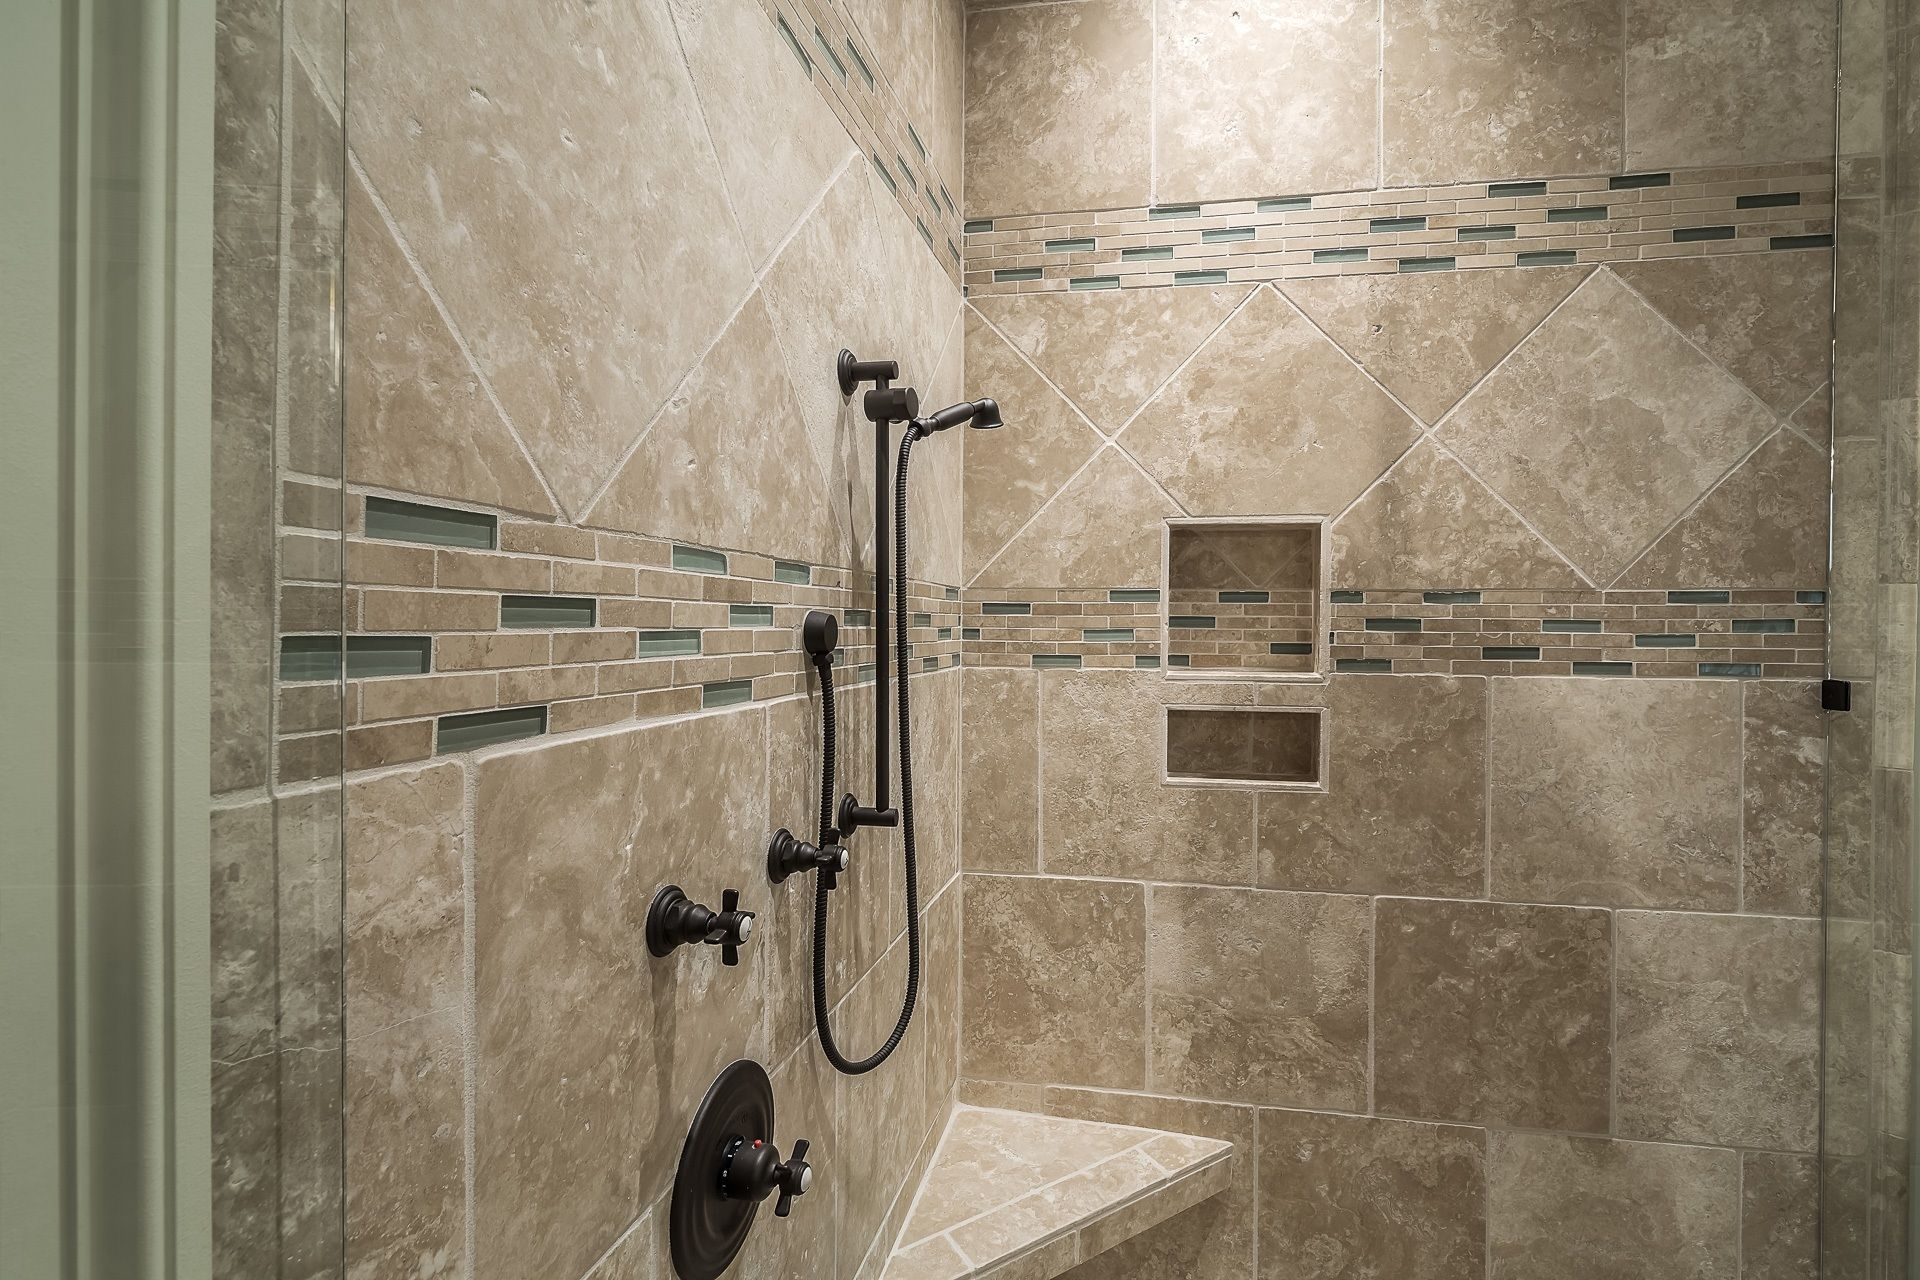 Best Tips For Your Next Tile Project Get Help From A Pro Shower Tile Beautiful Tile Bathroom Shower Remodel